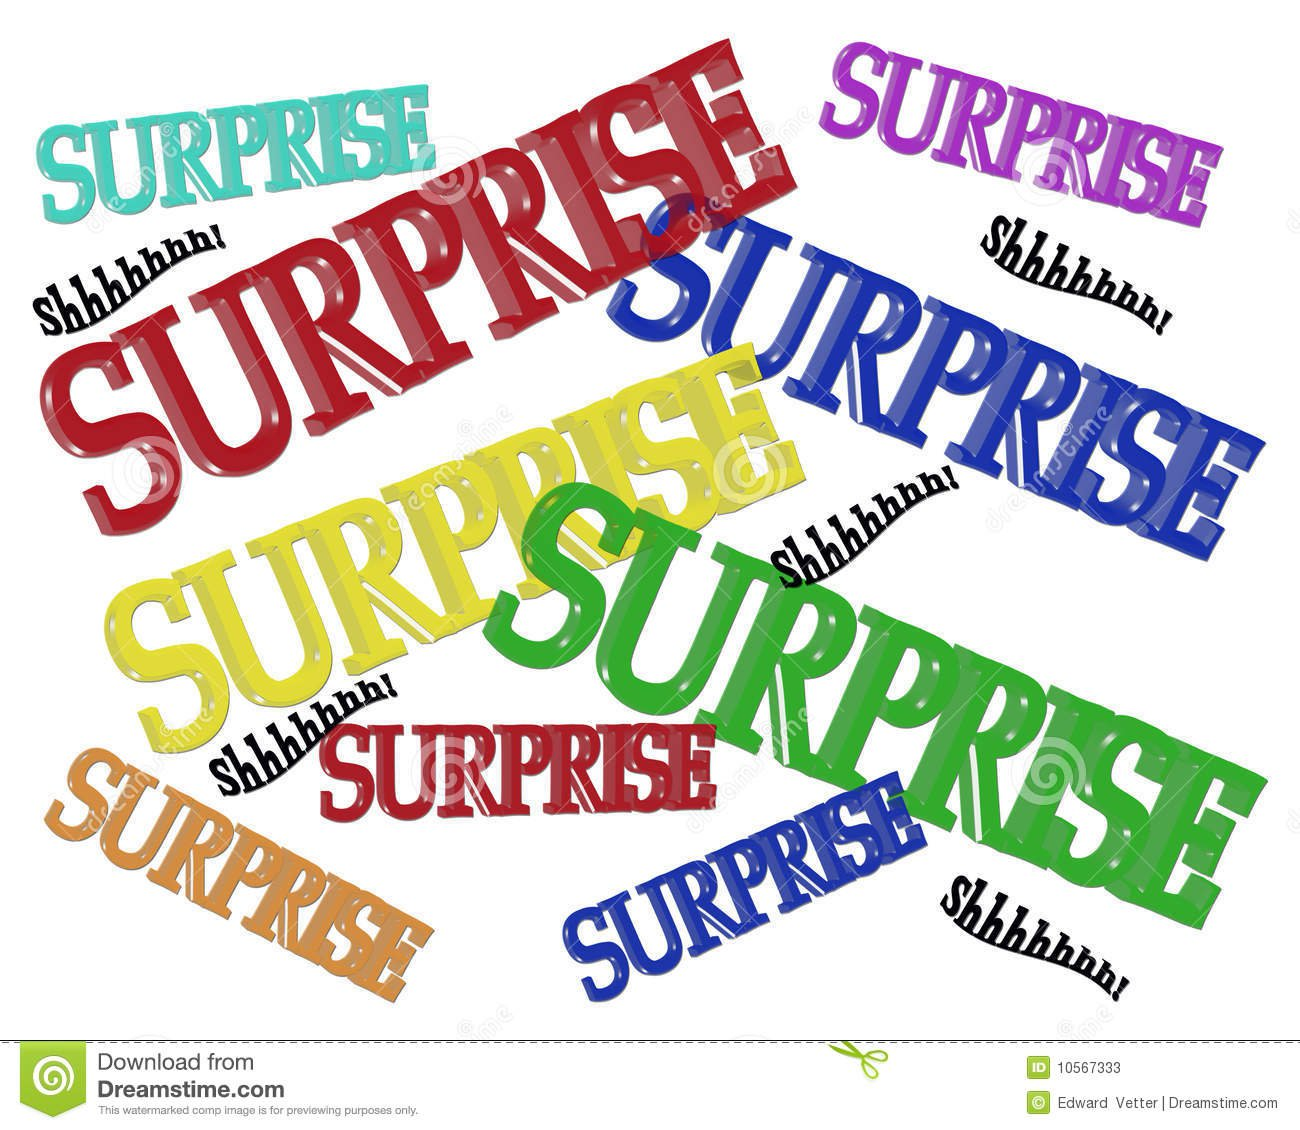 Surprise Birthday Pictures Clip Art